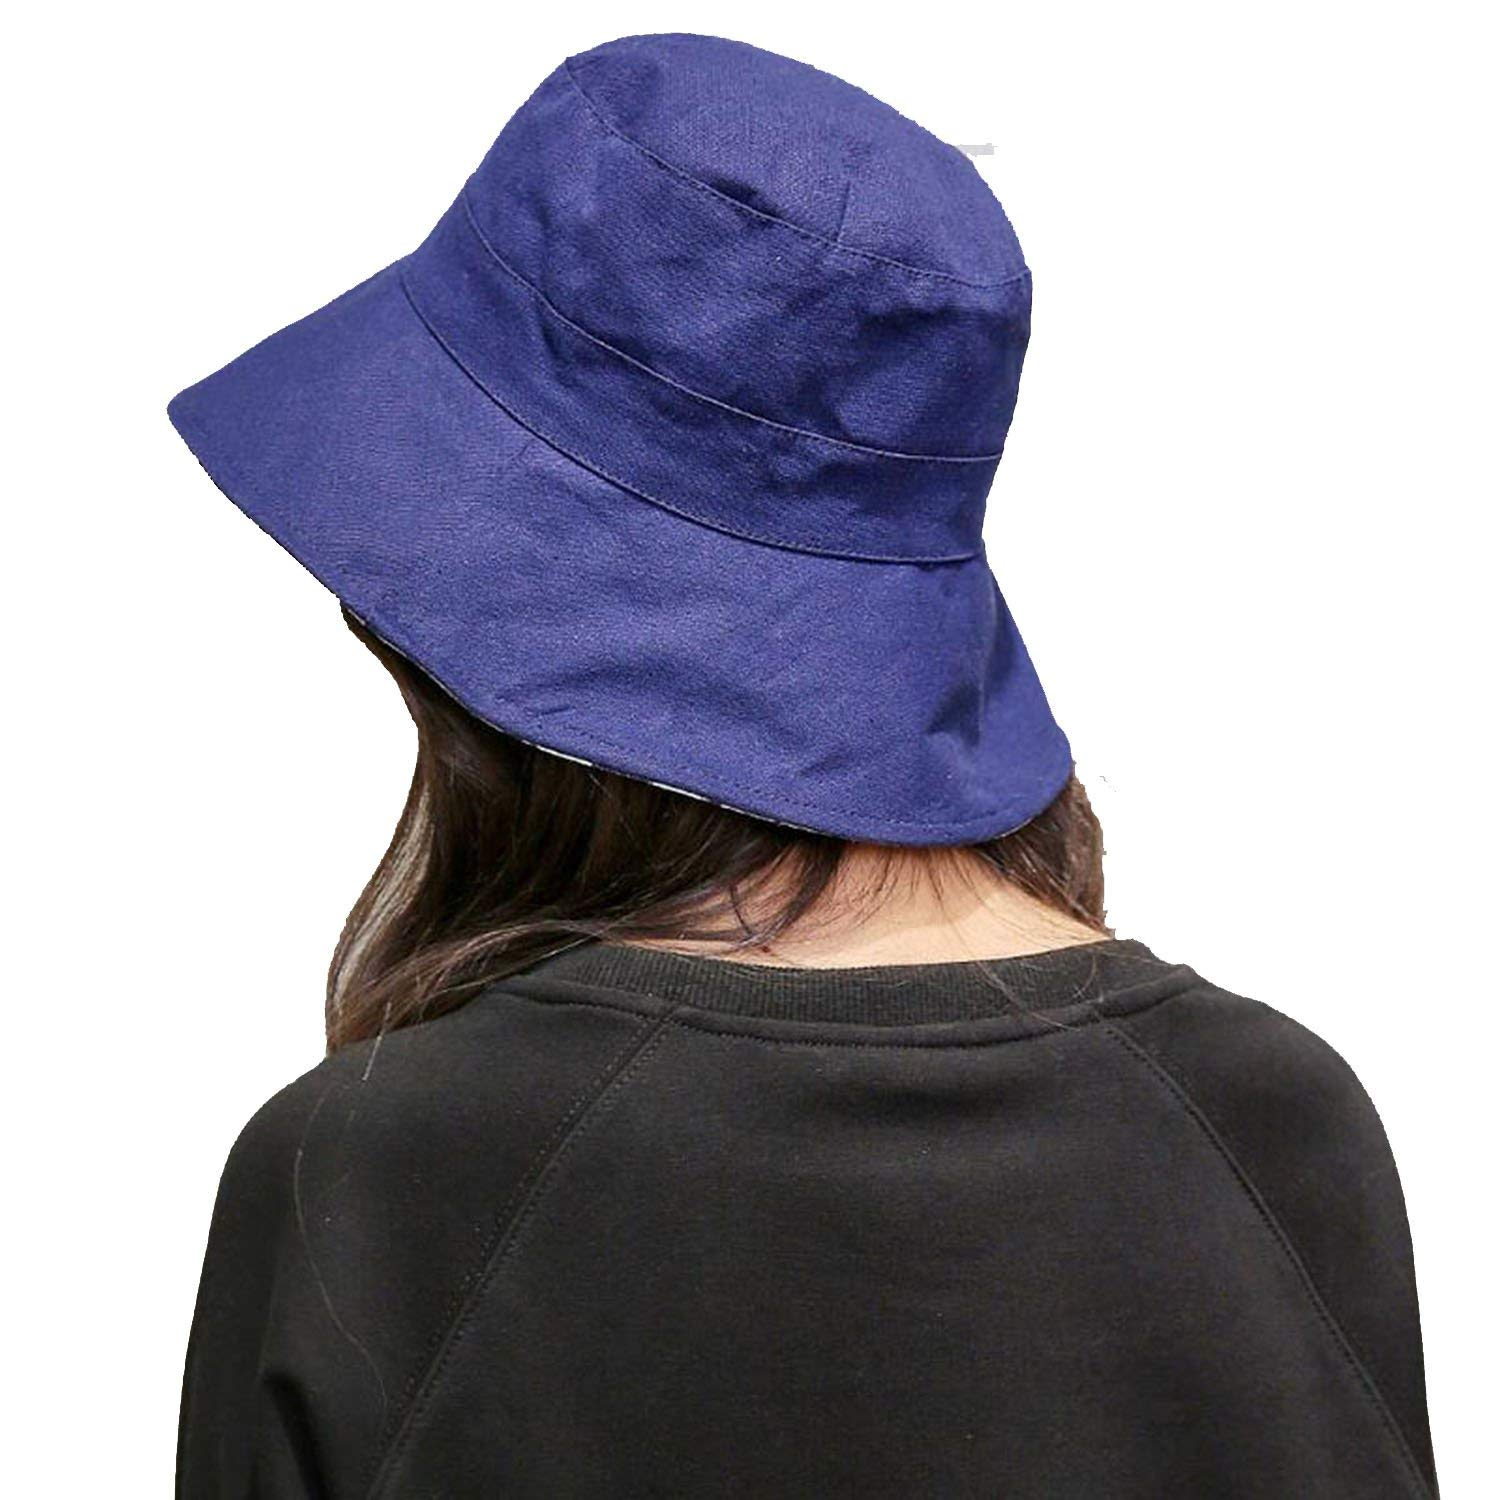 7a36340f89723 Get Quotations · 2018 Hat Ladies Casual Double-Sided Fisherman Hat Fashion  Flat top Visor Sun Protection Cap